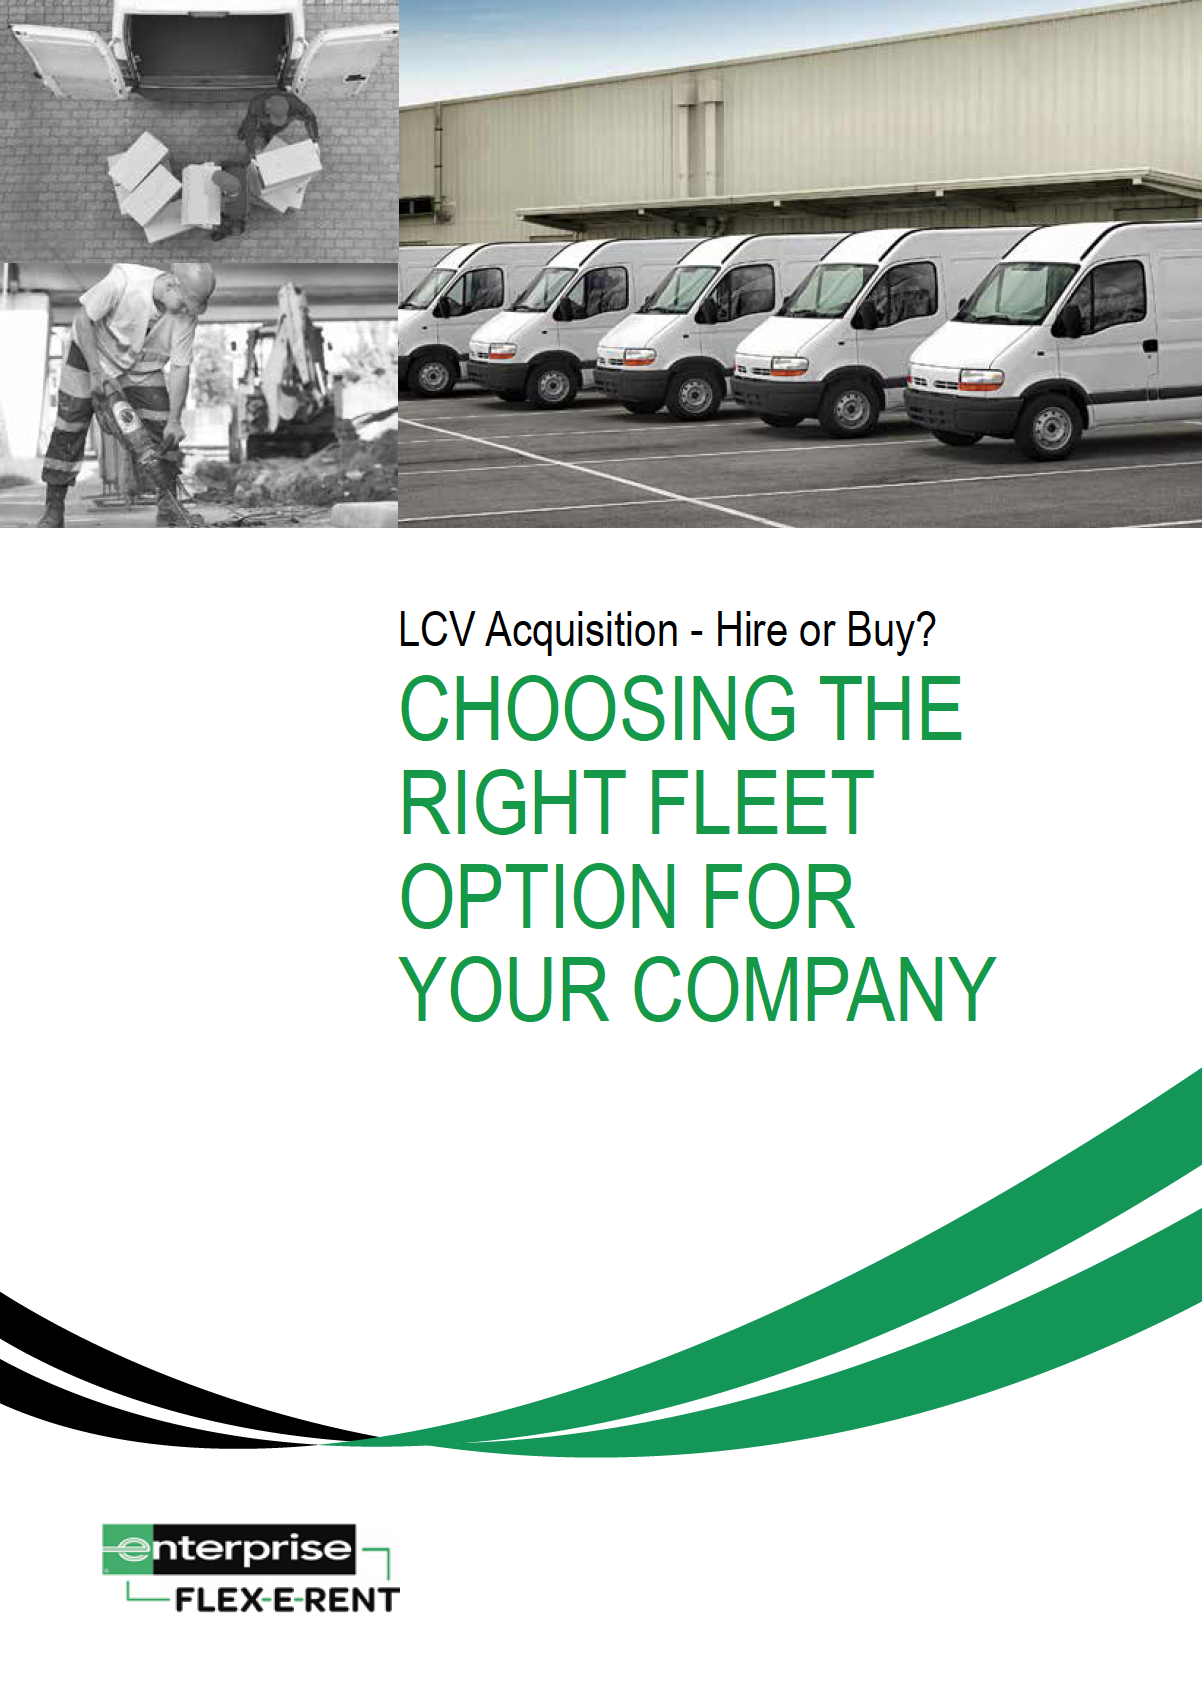 LCV Acquisition - Hire or Buy? Choosing the right fleet option for your company